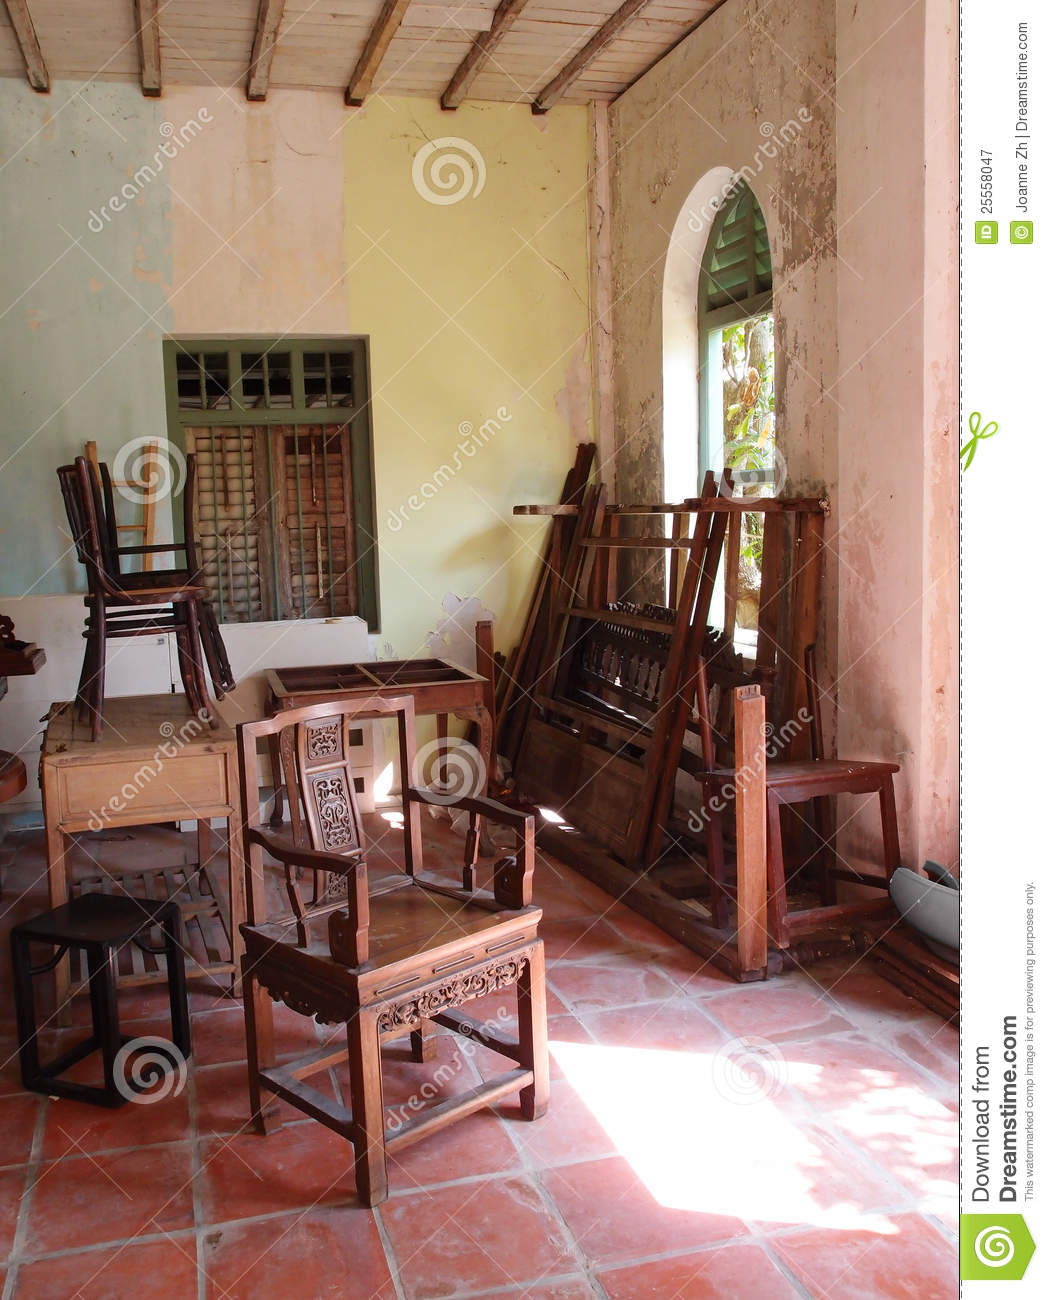 Old furniture in dilapidated old house royalty free stock for Classic house furniture galleries